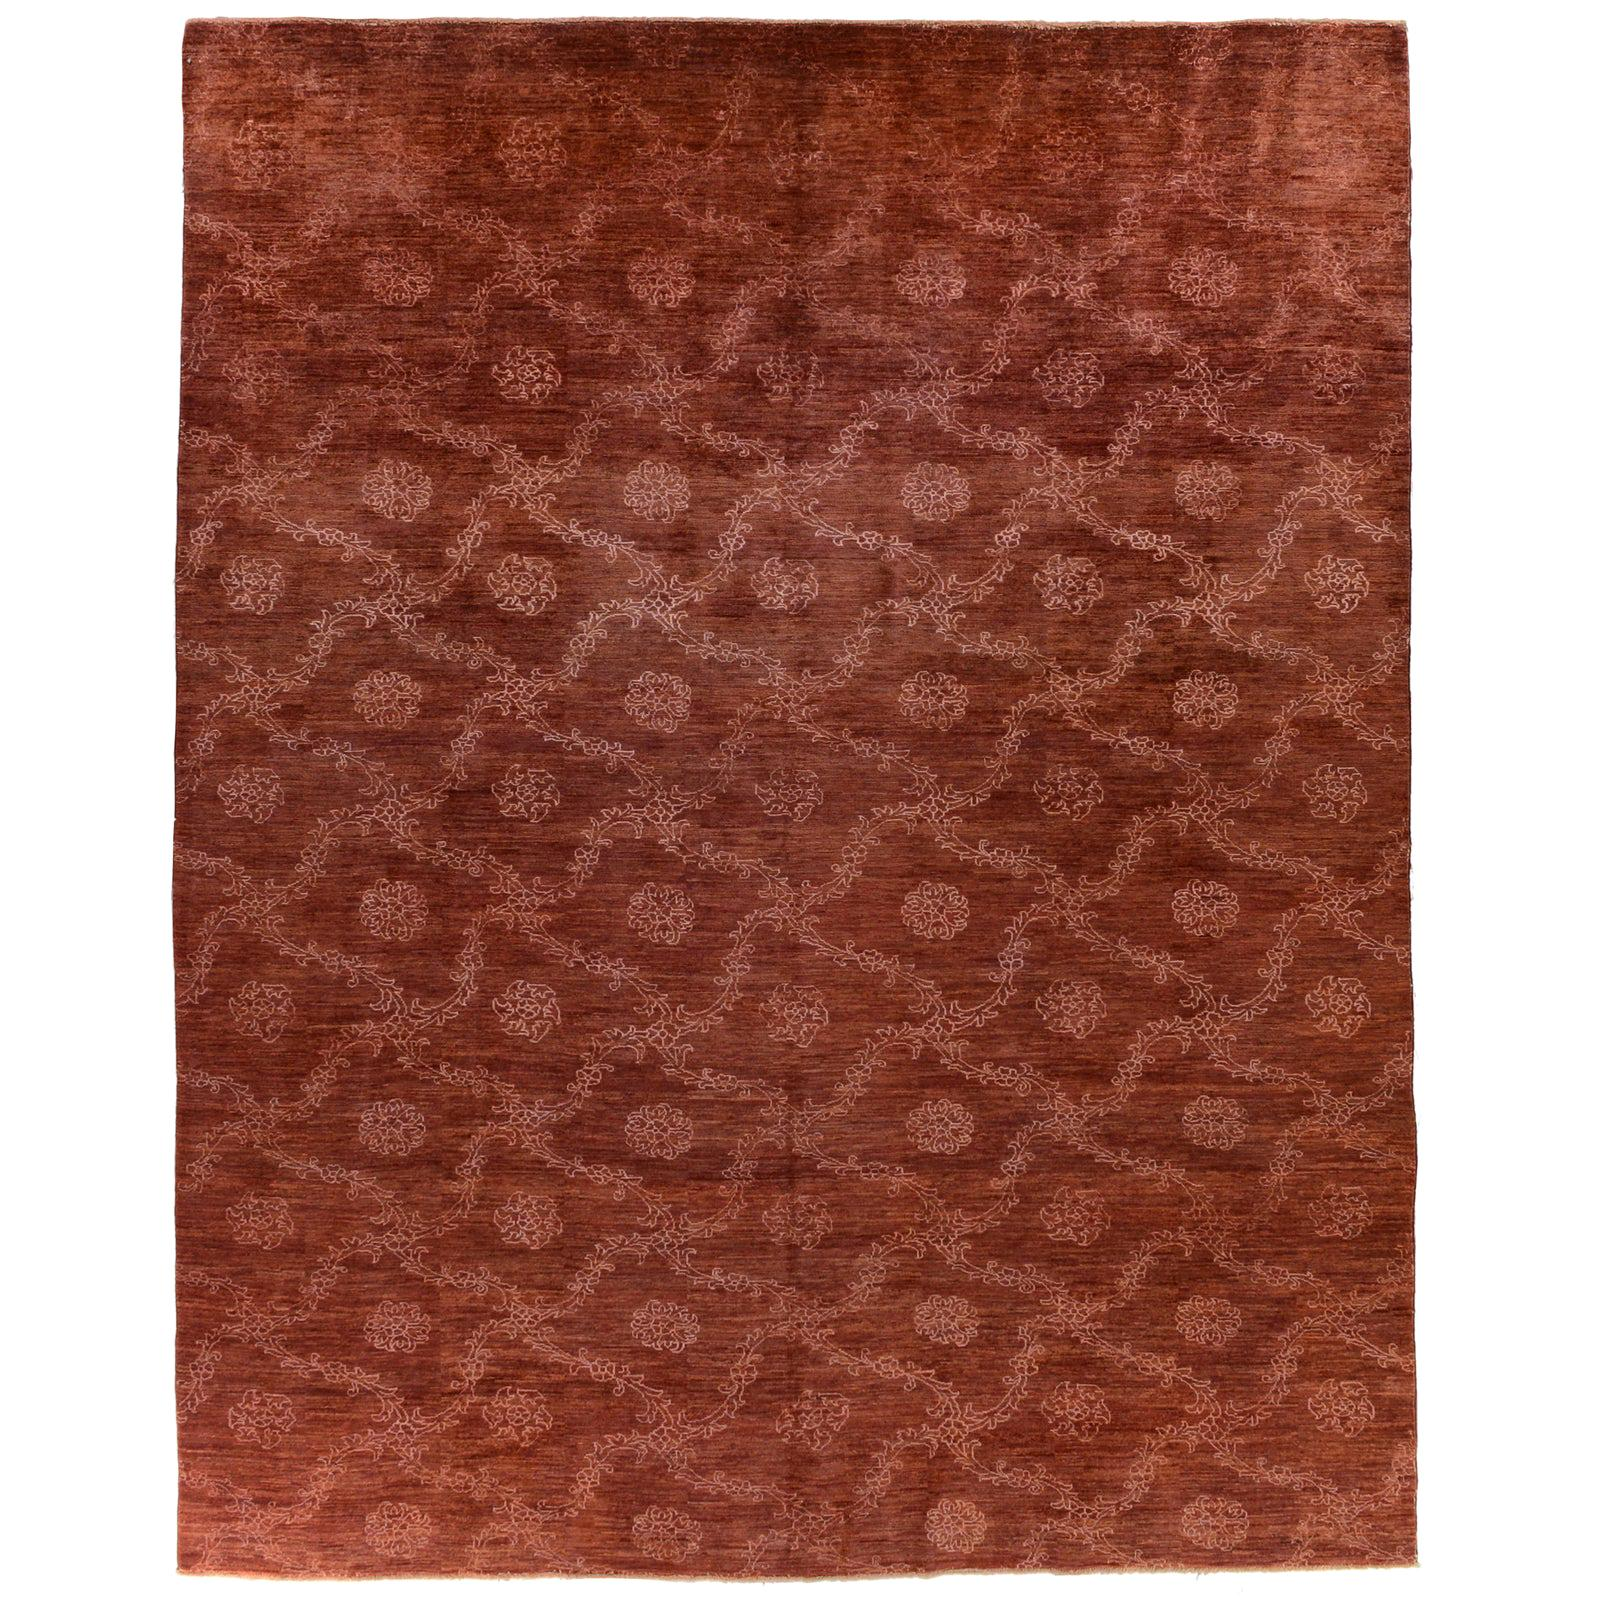 Red Floral Stencil Design Wool and Silk Area Rug